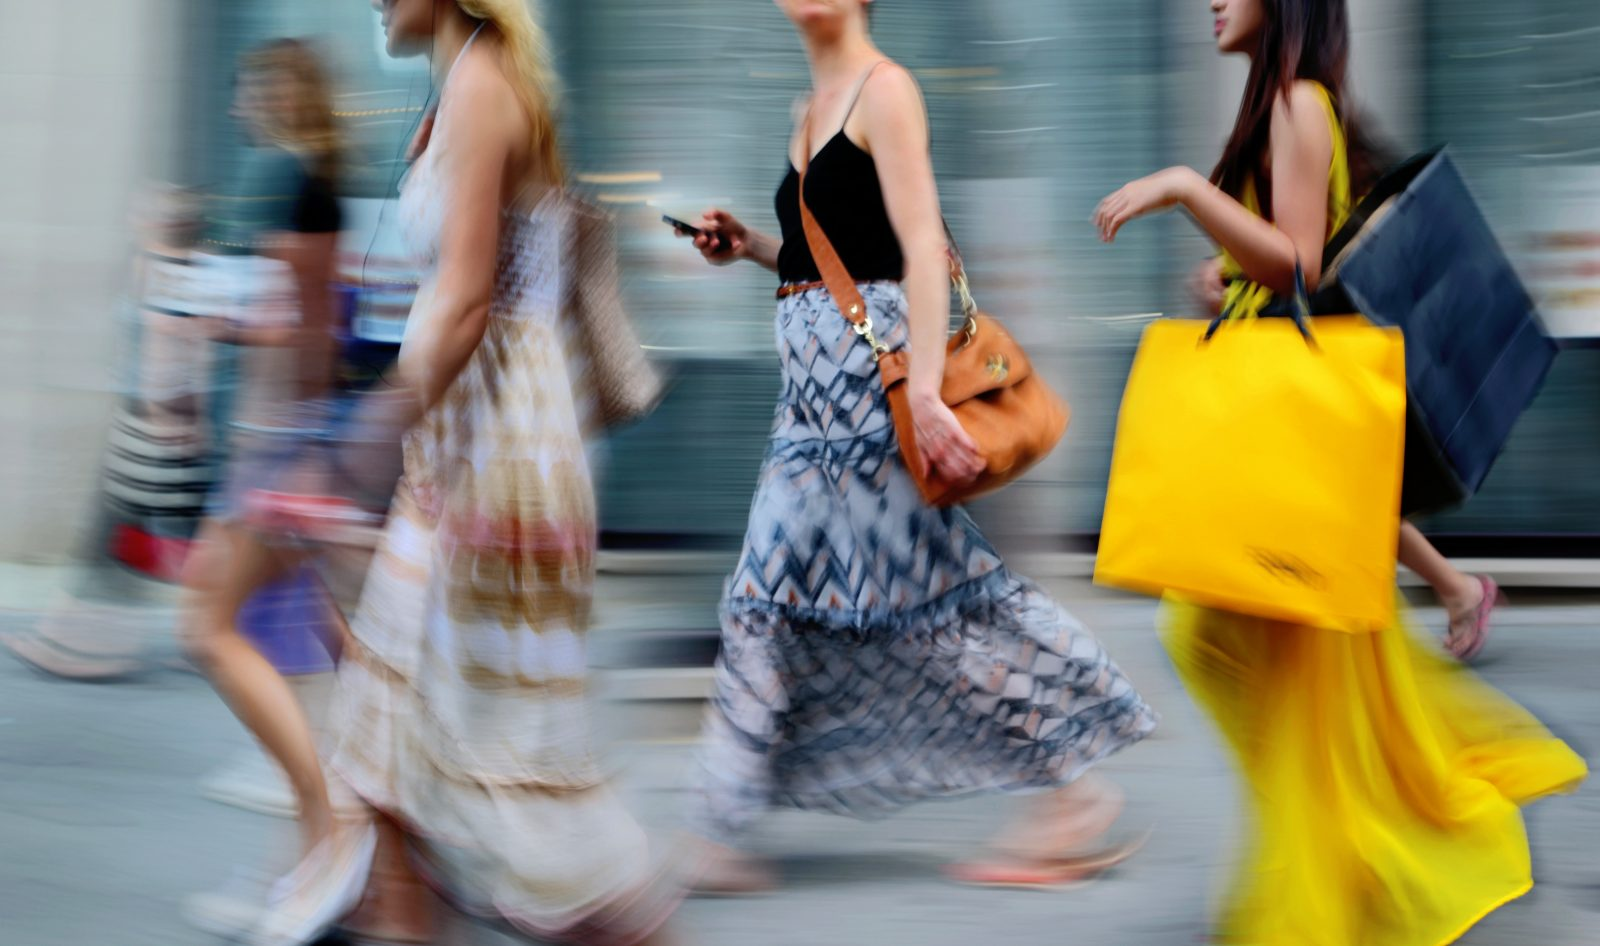 The Damaging Environmental Effect of Fast Fashion